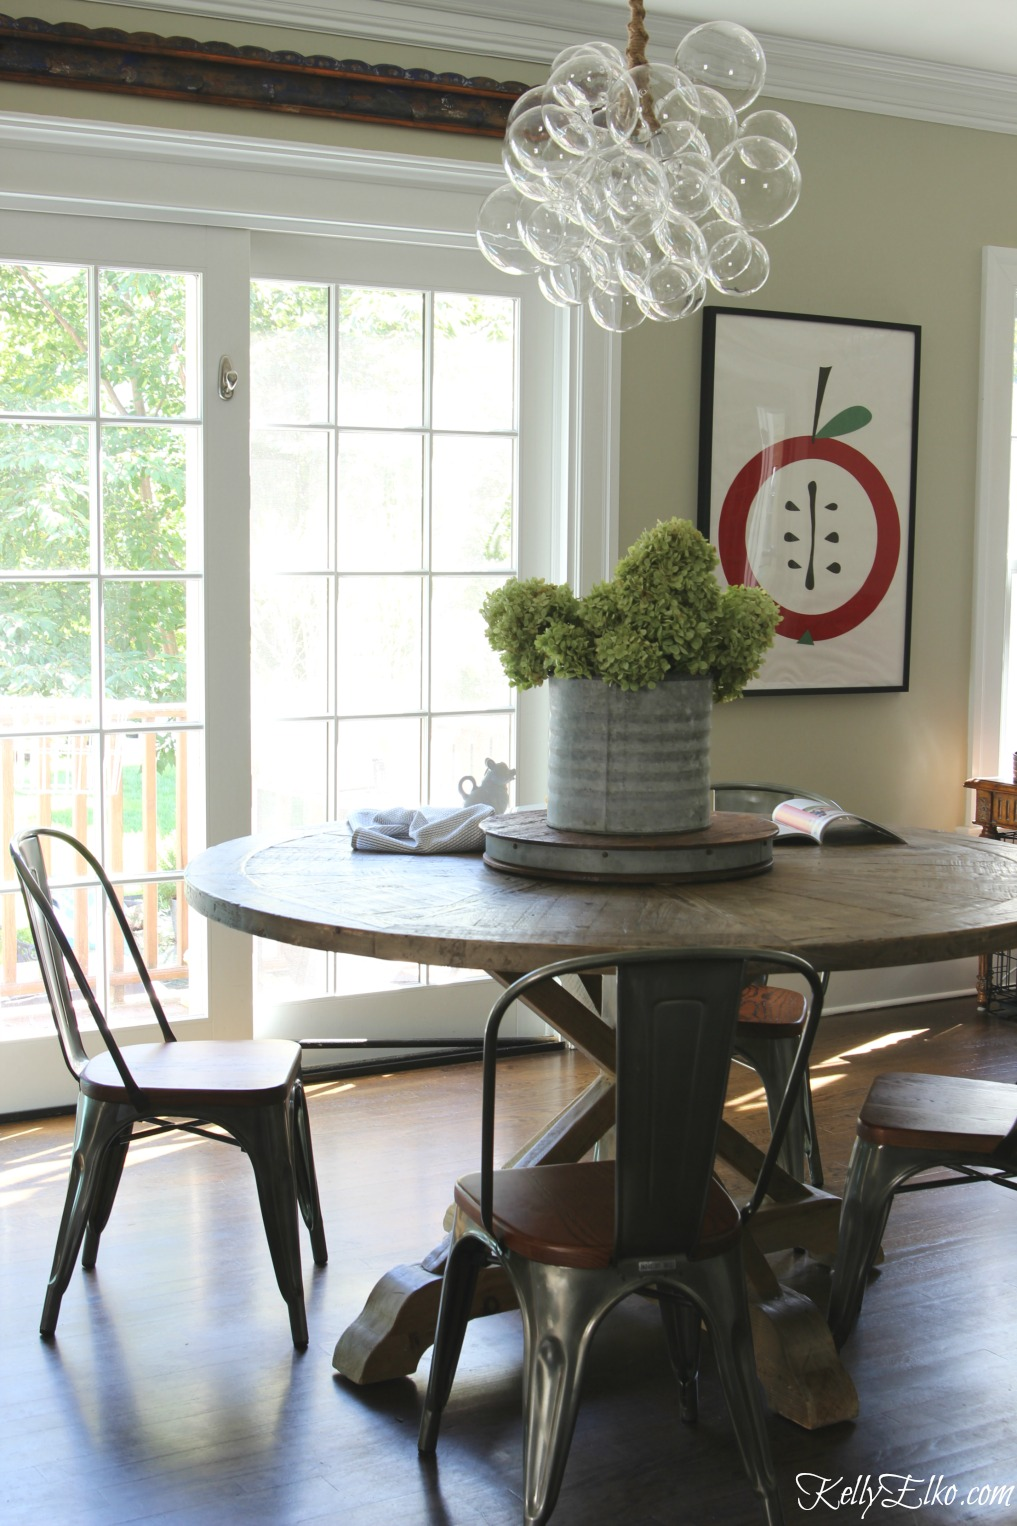 chandelier buying tips kitchen table chandelier Wow love the modern bubble chandelier paired with farmhouse kitchen table kellyelko com